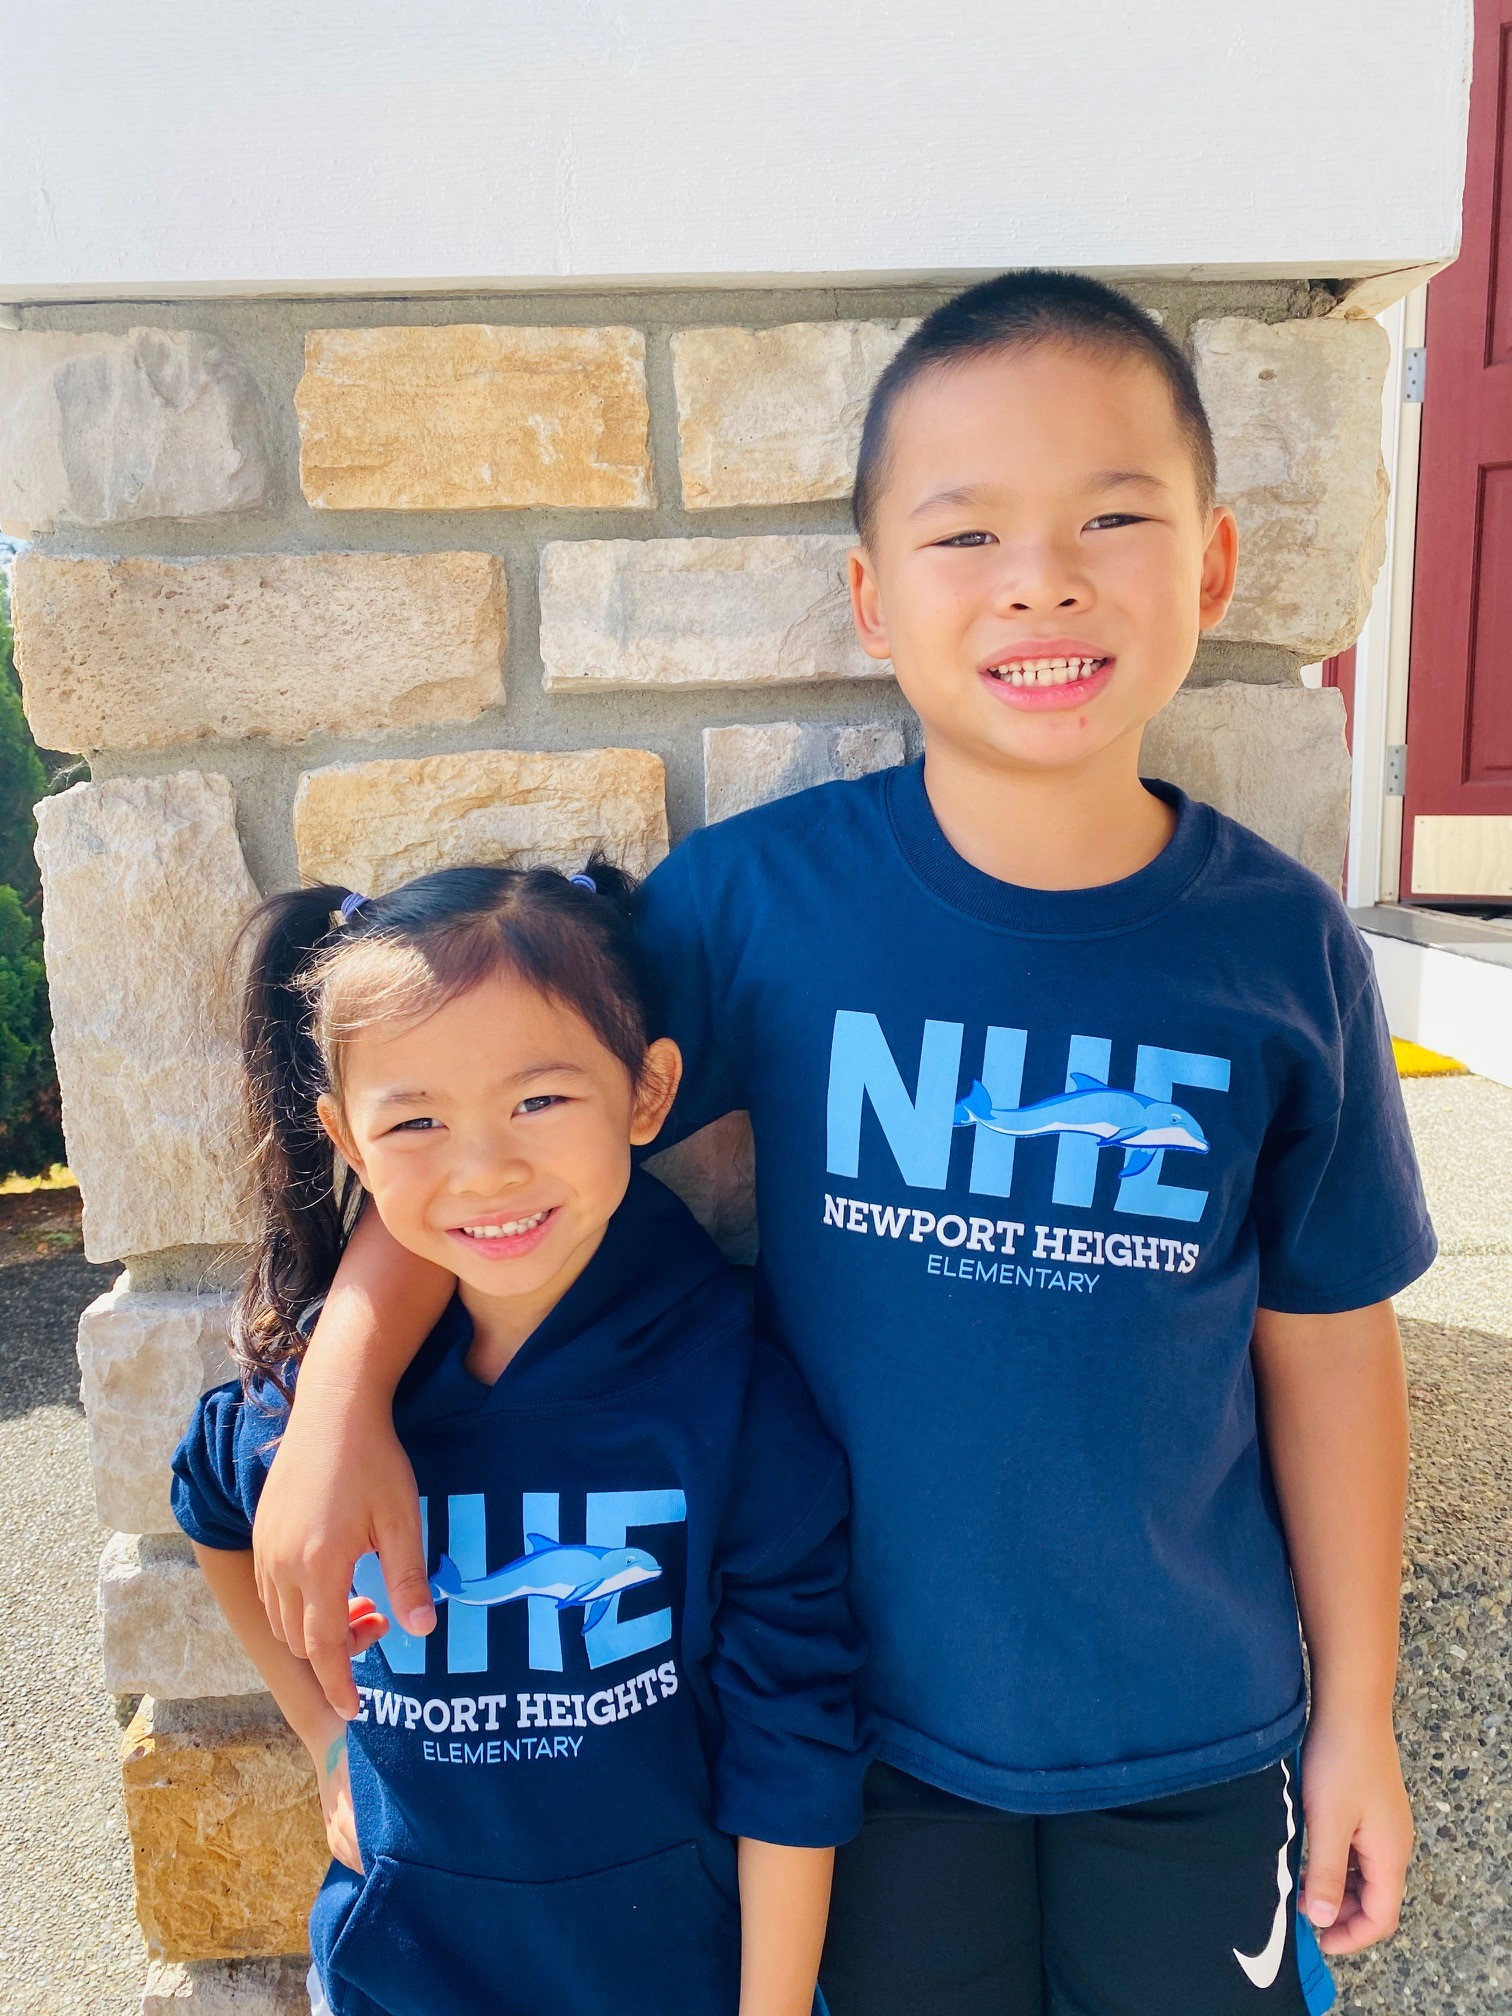 students wearing Newport Heights elementary shirts